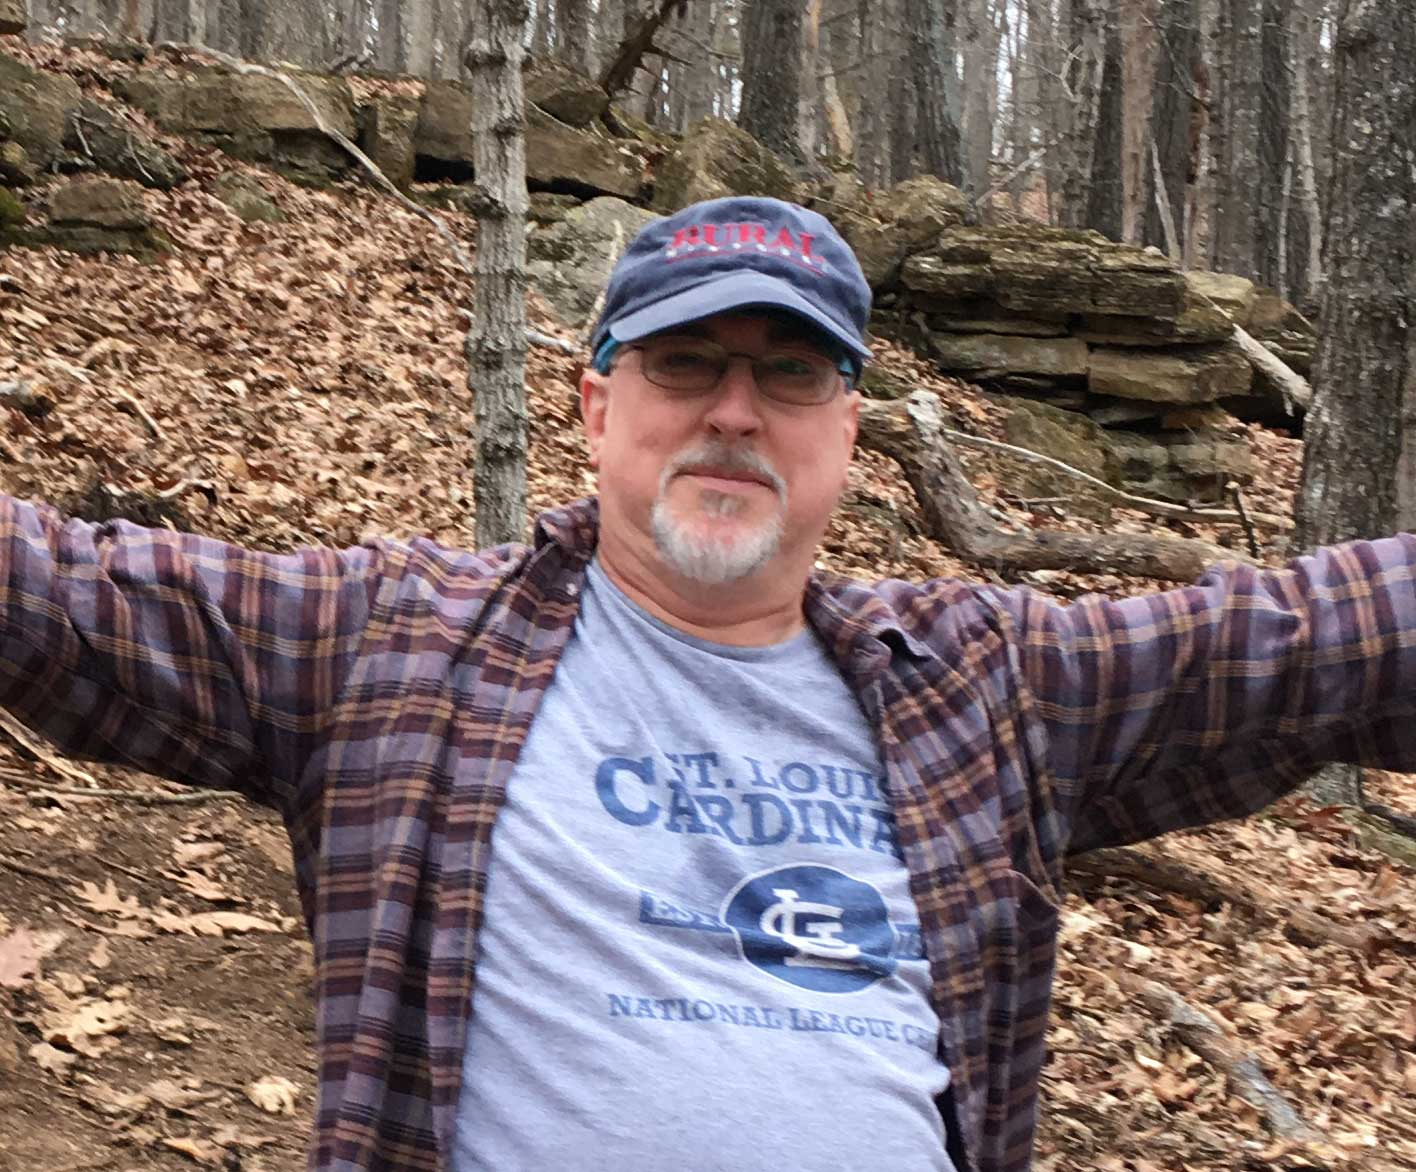 Paul taking a break during a hike at Don Robinson State Park